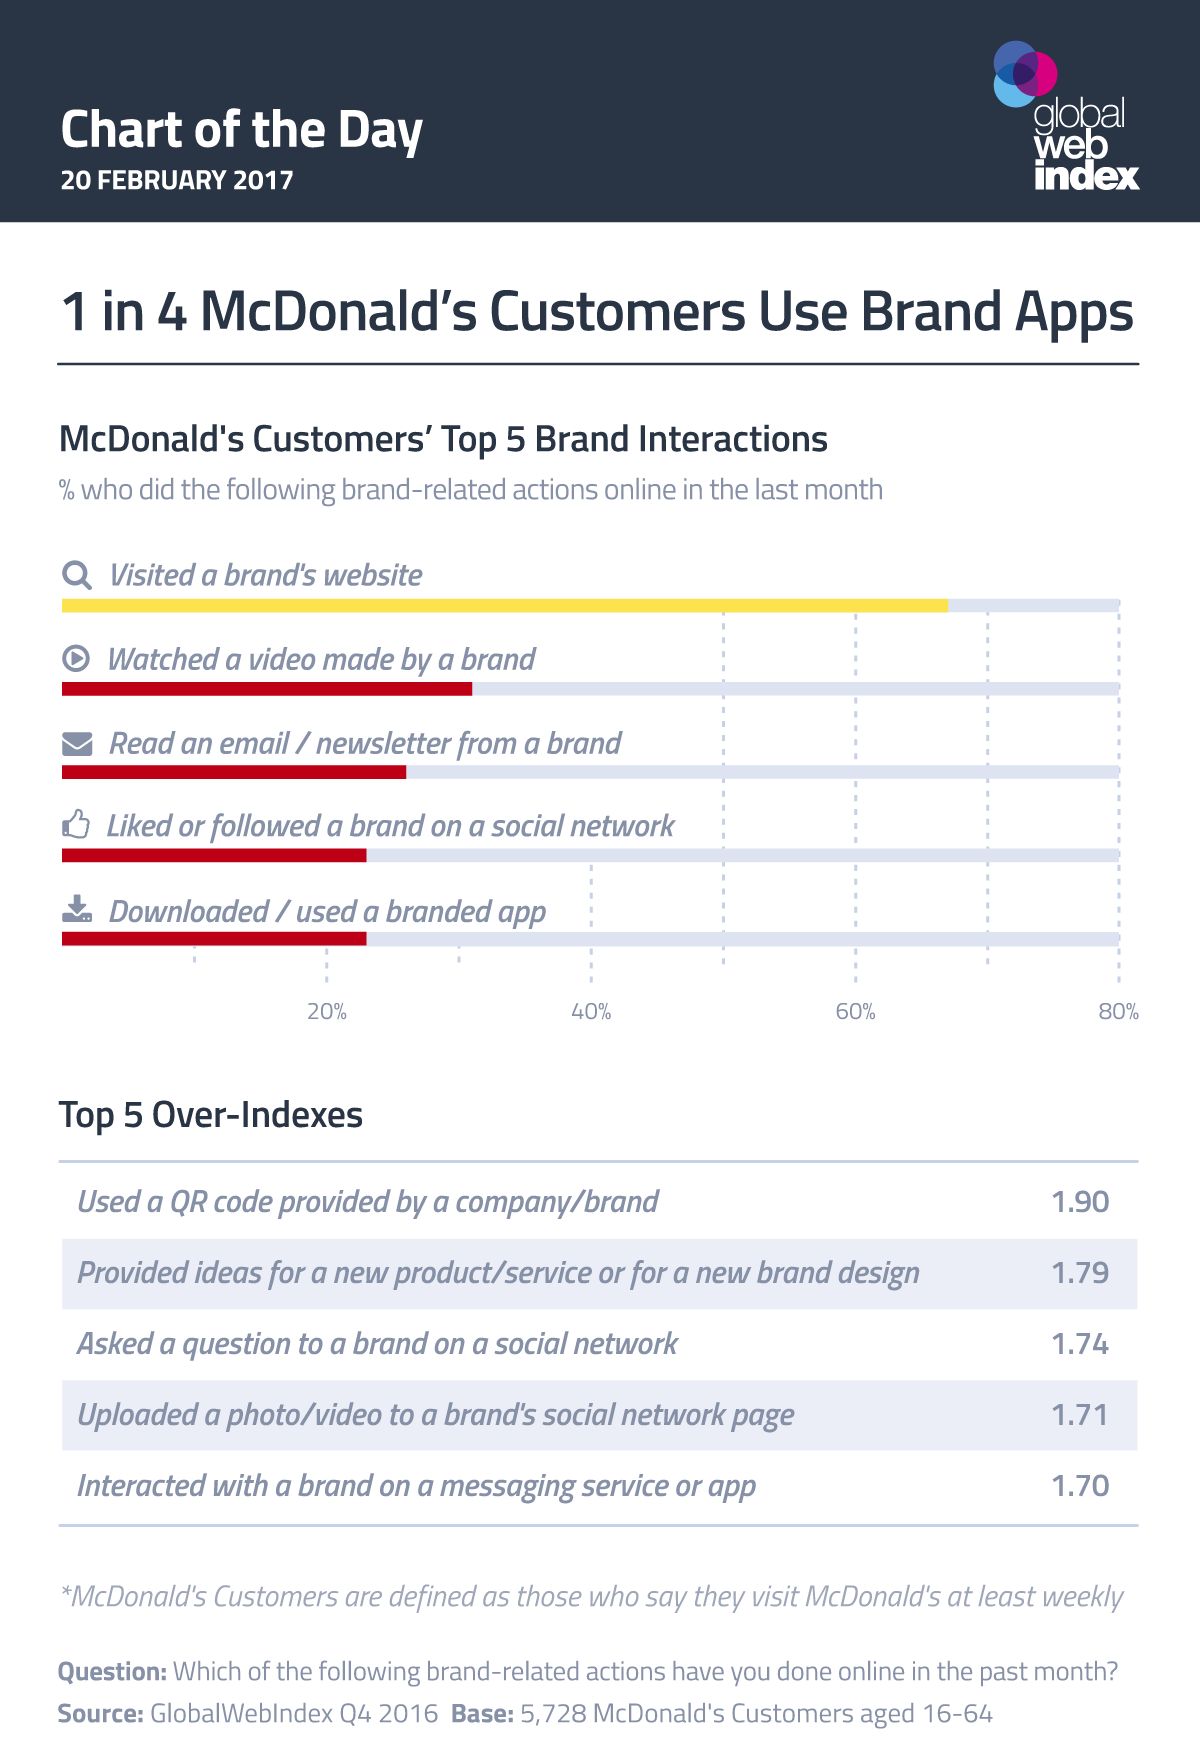 1 in 4 McDonald's Customers Use Brand Apps